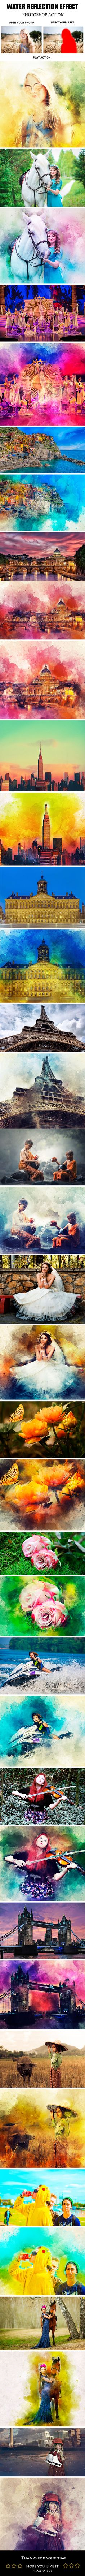 Water Reflection Effect Photoshop Action - Photo Effects Actions